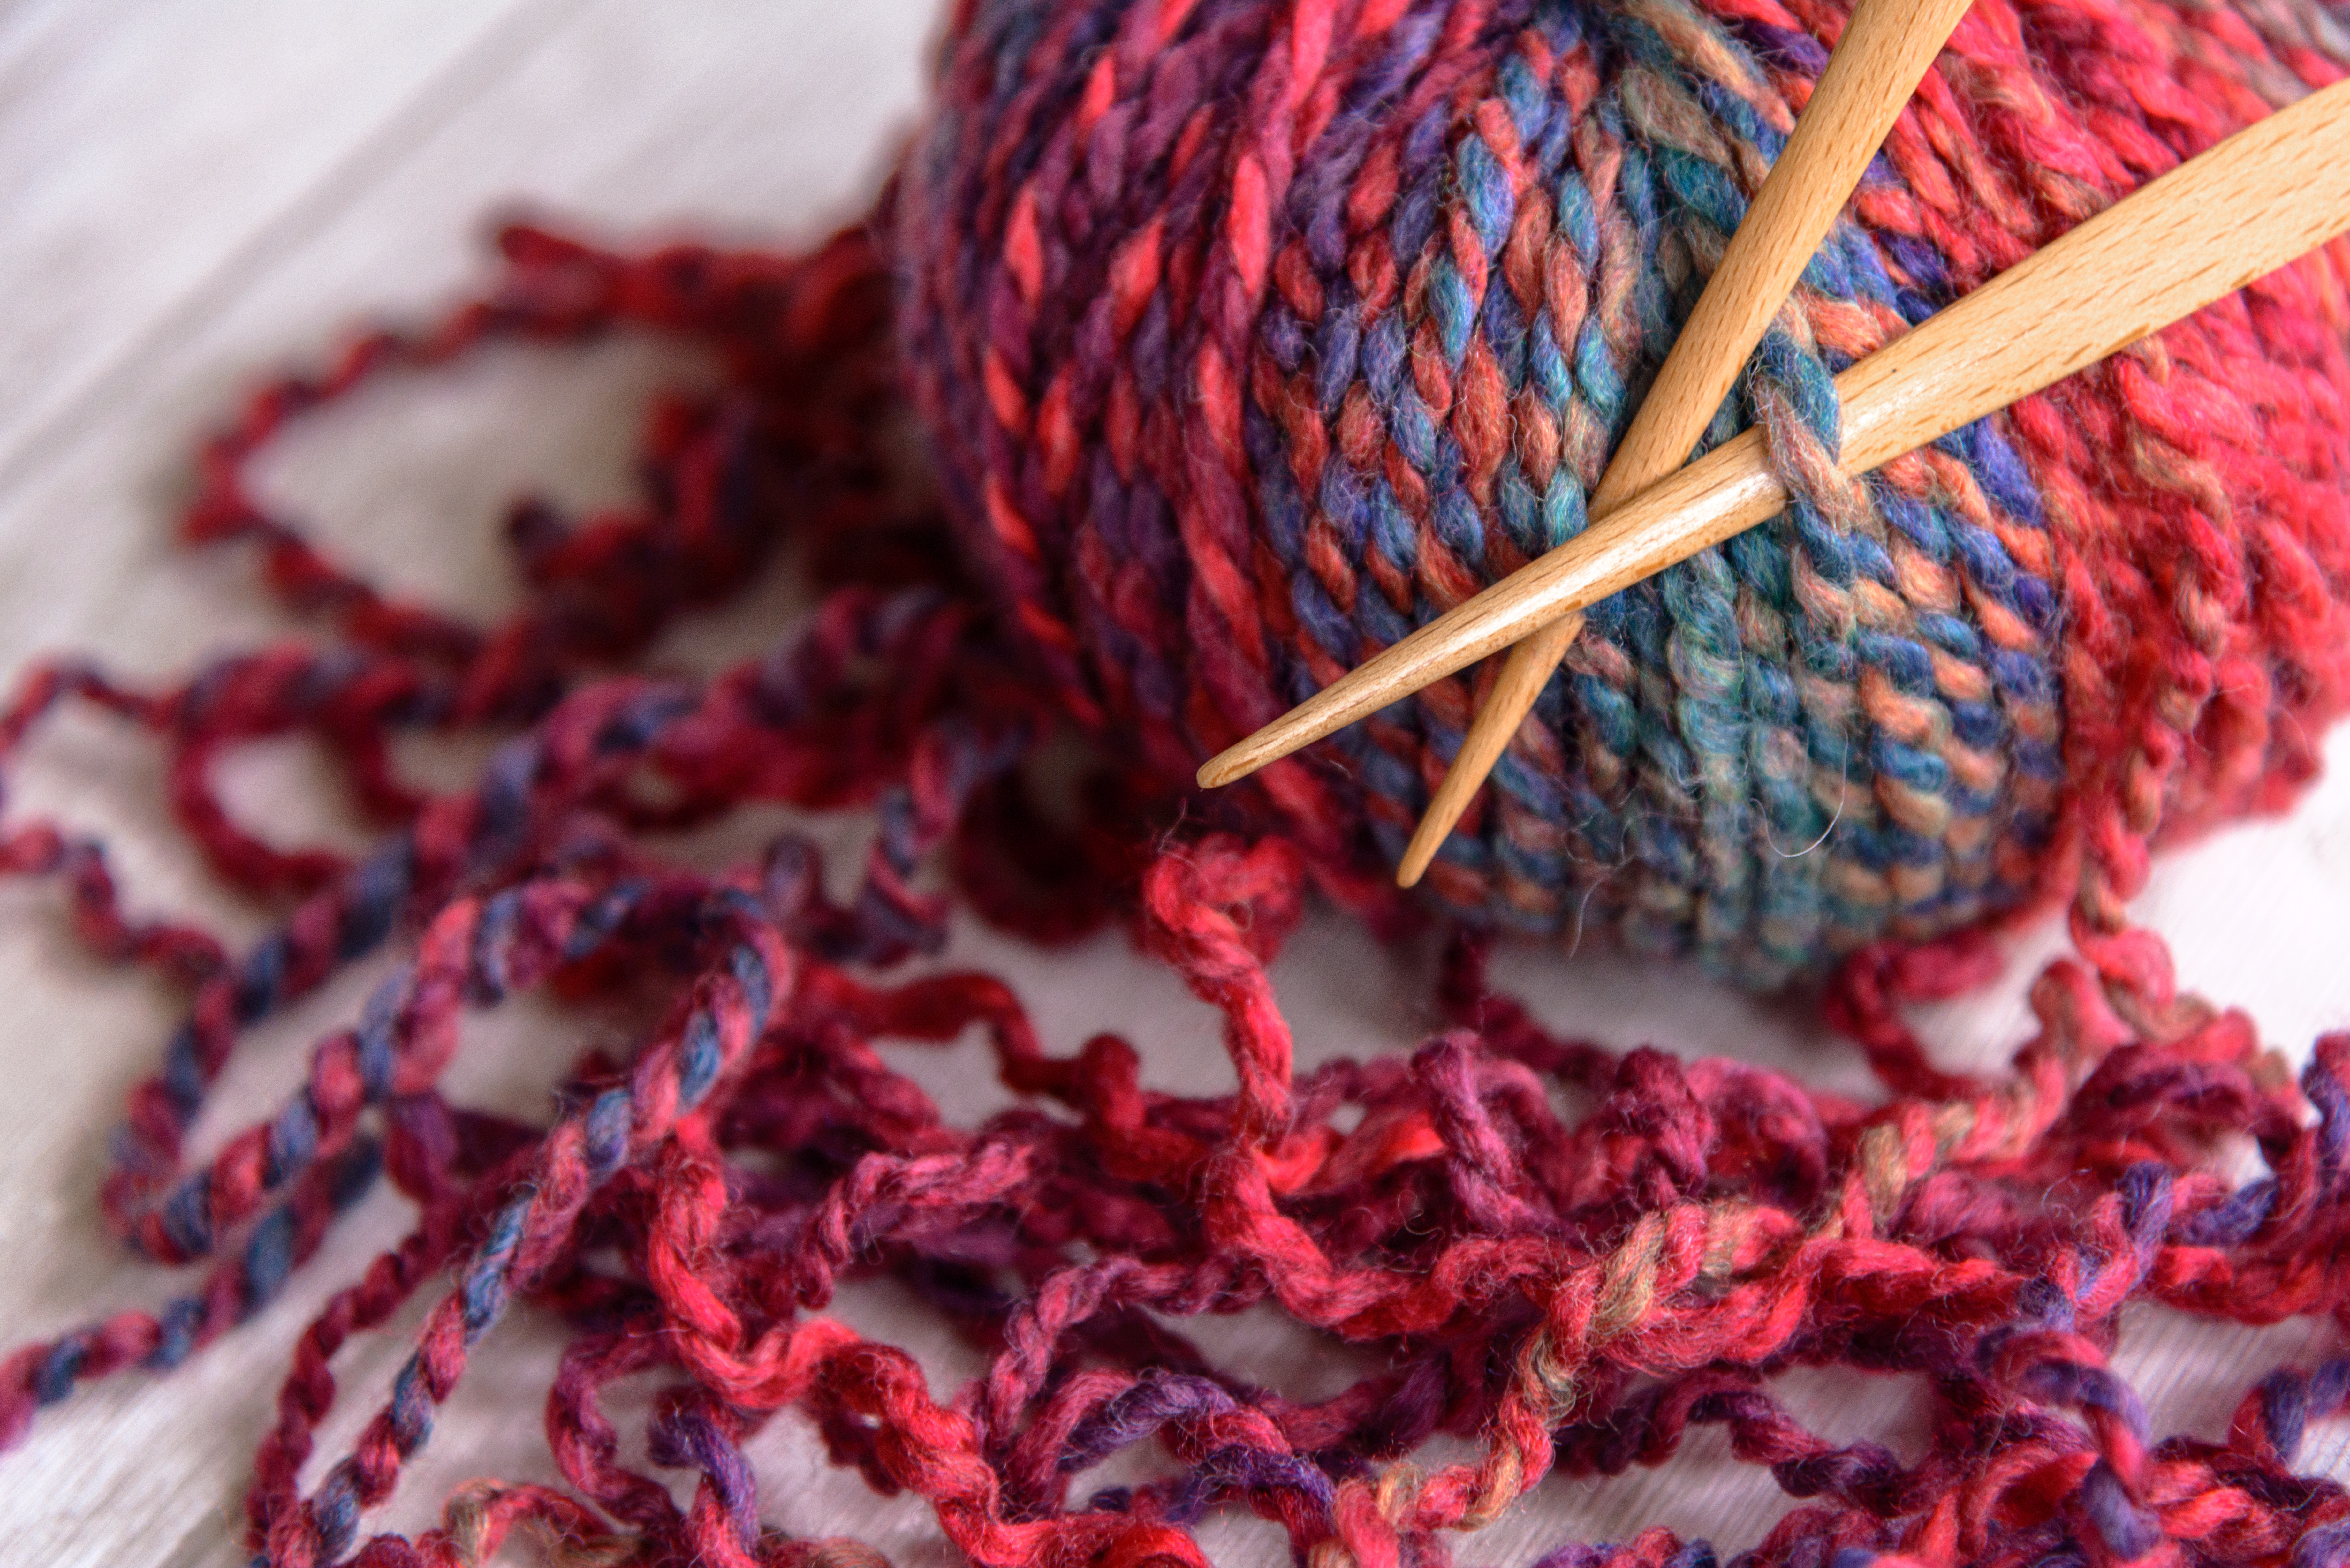 Rivalry Knitting Patterns This Knitting Group Just Banned Posts Supporting Trump Time